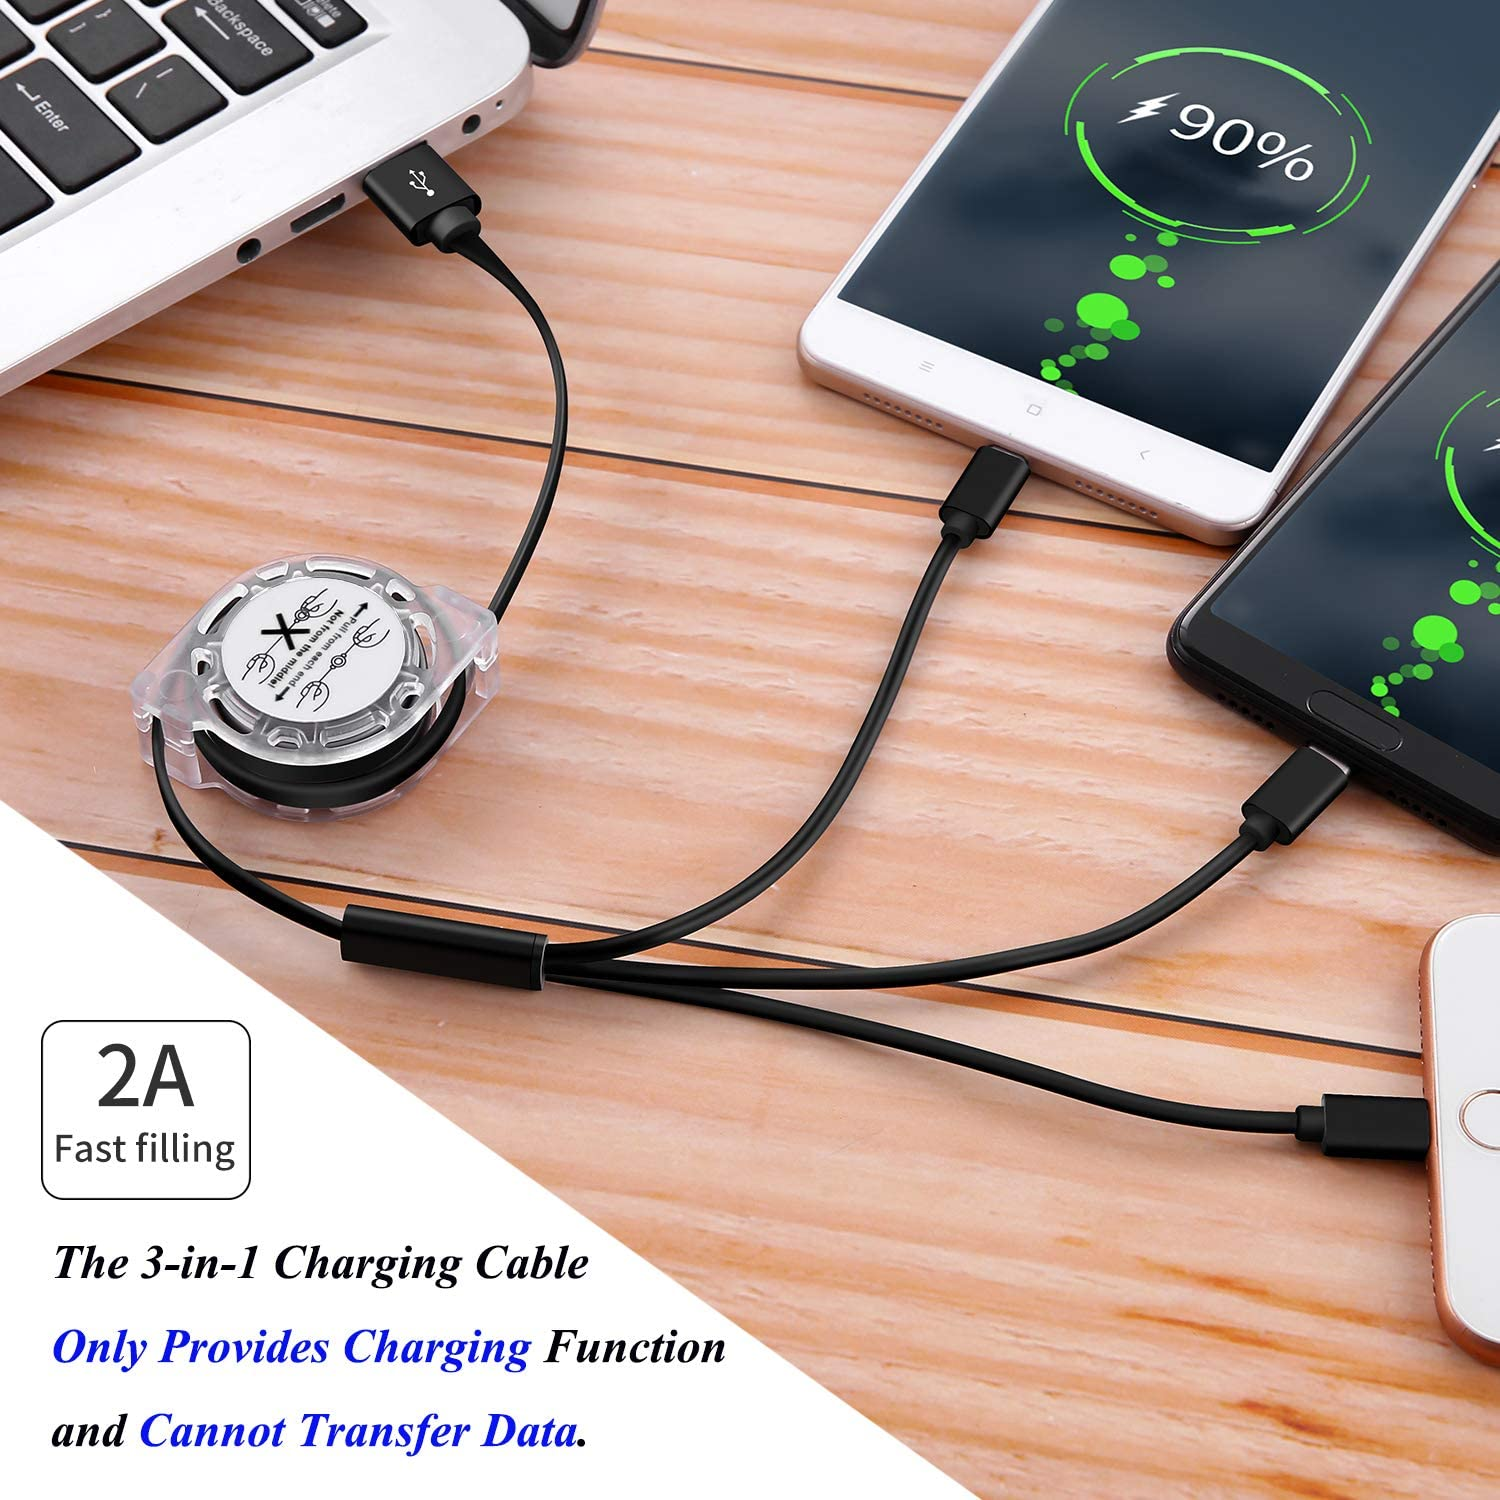 3-in-1 Retractable USB Charging Cable Bike Club Fast Charging Print Charger Cord Compatible with Cell Phones Tablets Universal Use